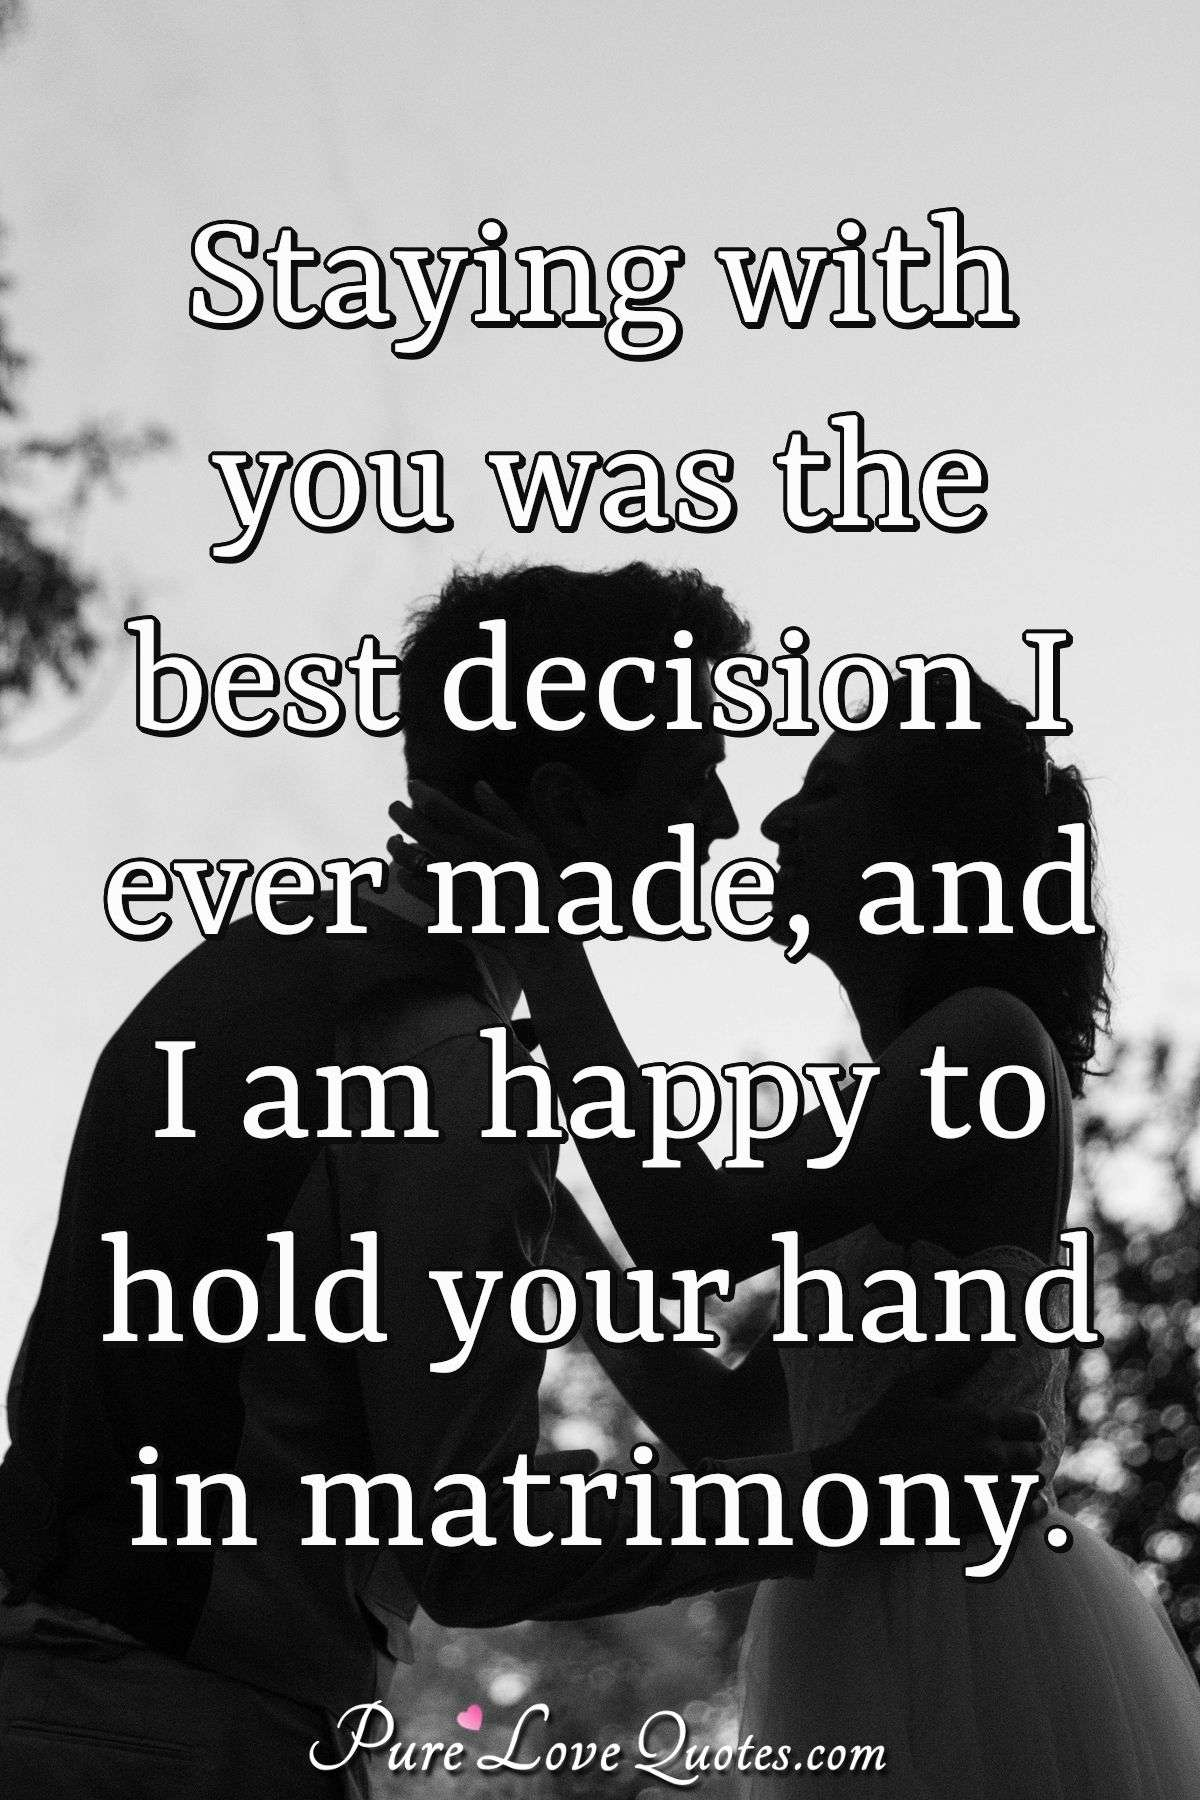 Staying with you was the best decision I ever made, and I am happy to hold your hand in matrimony. - PureLoveQuotes.com